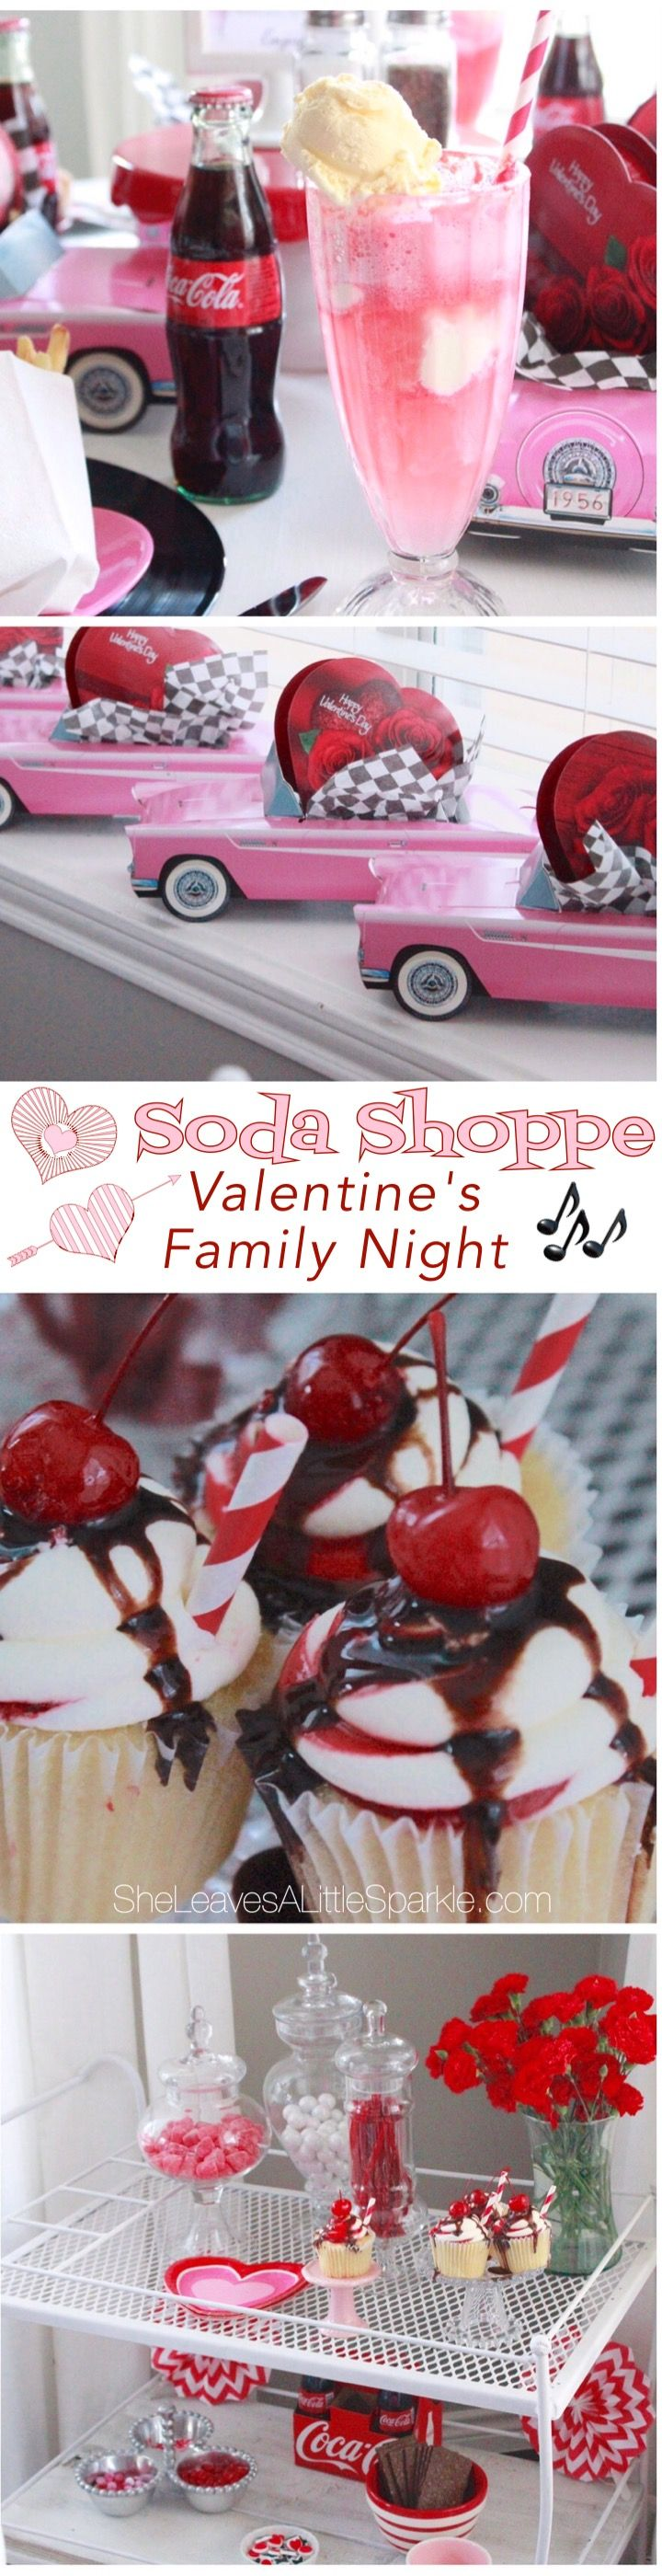 """Soda Shoppe Valentine's Family Night! Come see a fun idea we had to celebrate Valentine's Day with our kids...including 50's playlist for our sock hop AND we made """"love shacks""""."""